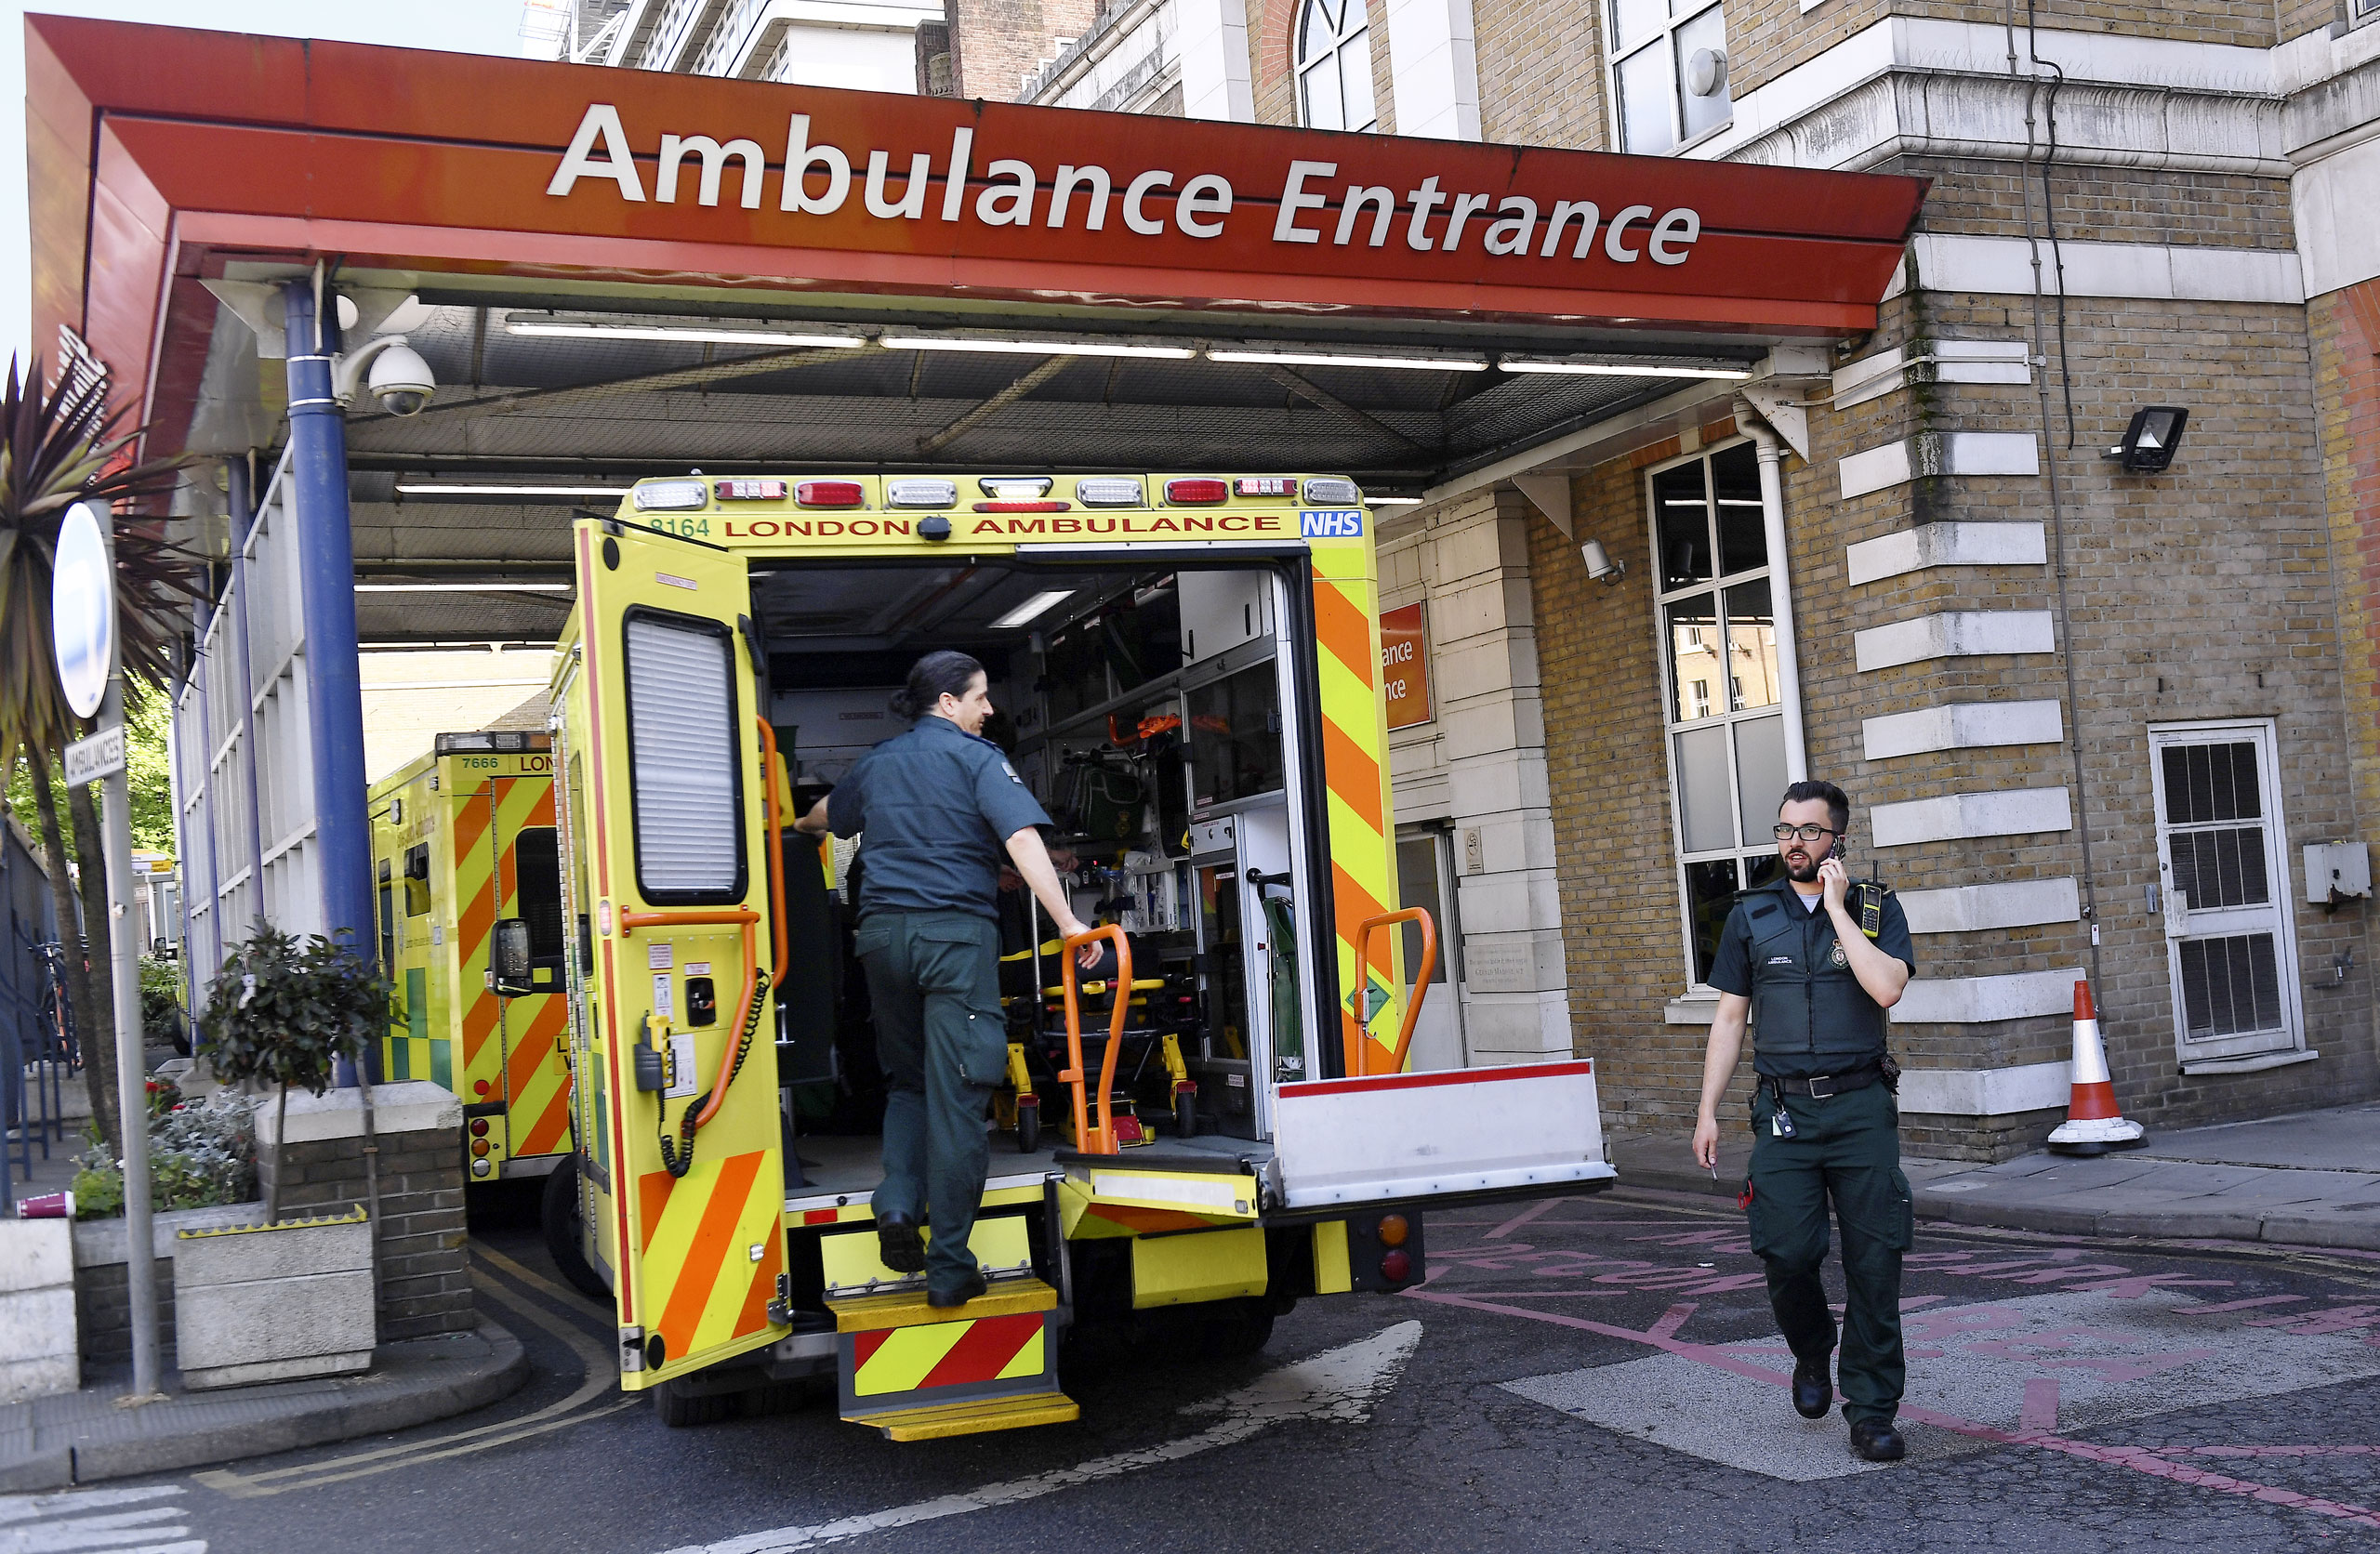 The cyberattack stalled computer systems worldwide, including those at several hospitals across England